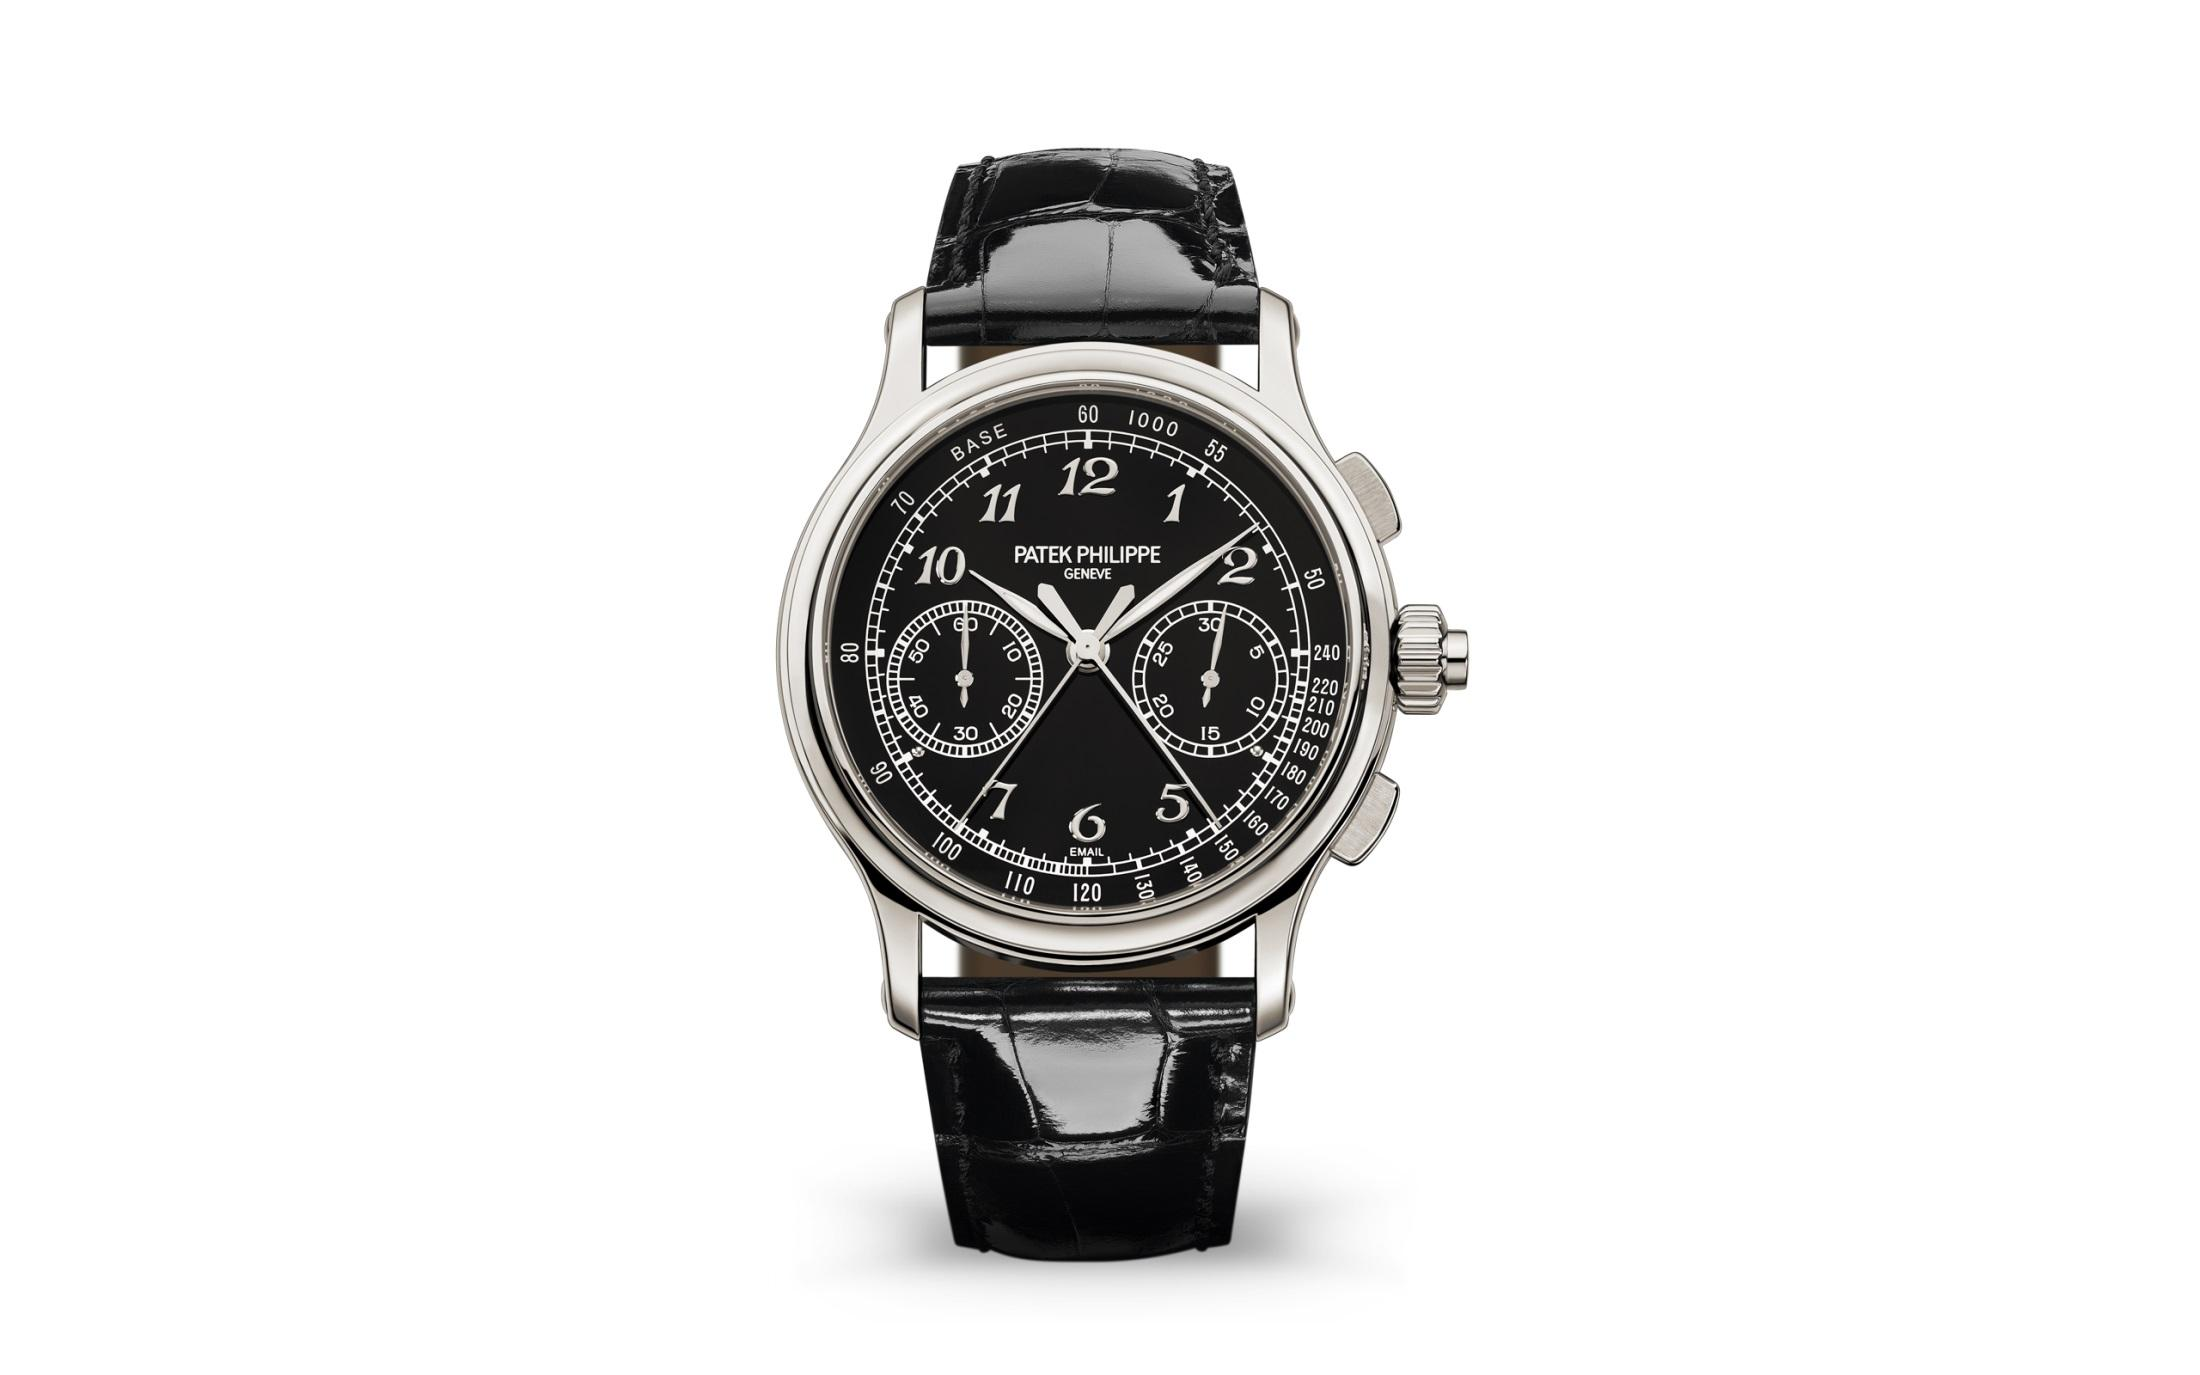 3040a6f65c56 Patek Philippe Might Come Up For Sale - LVMH Moet Hennessy Louis ...